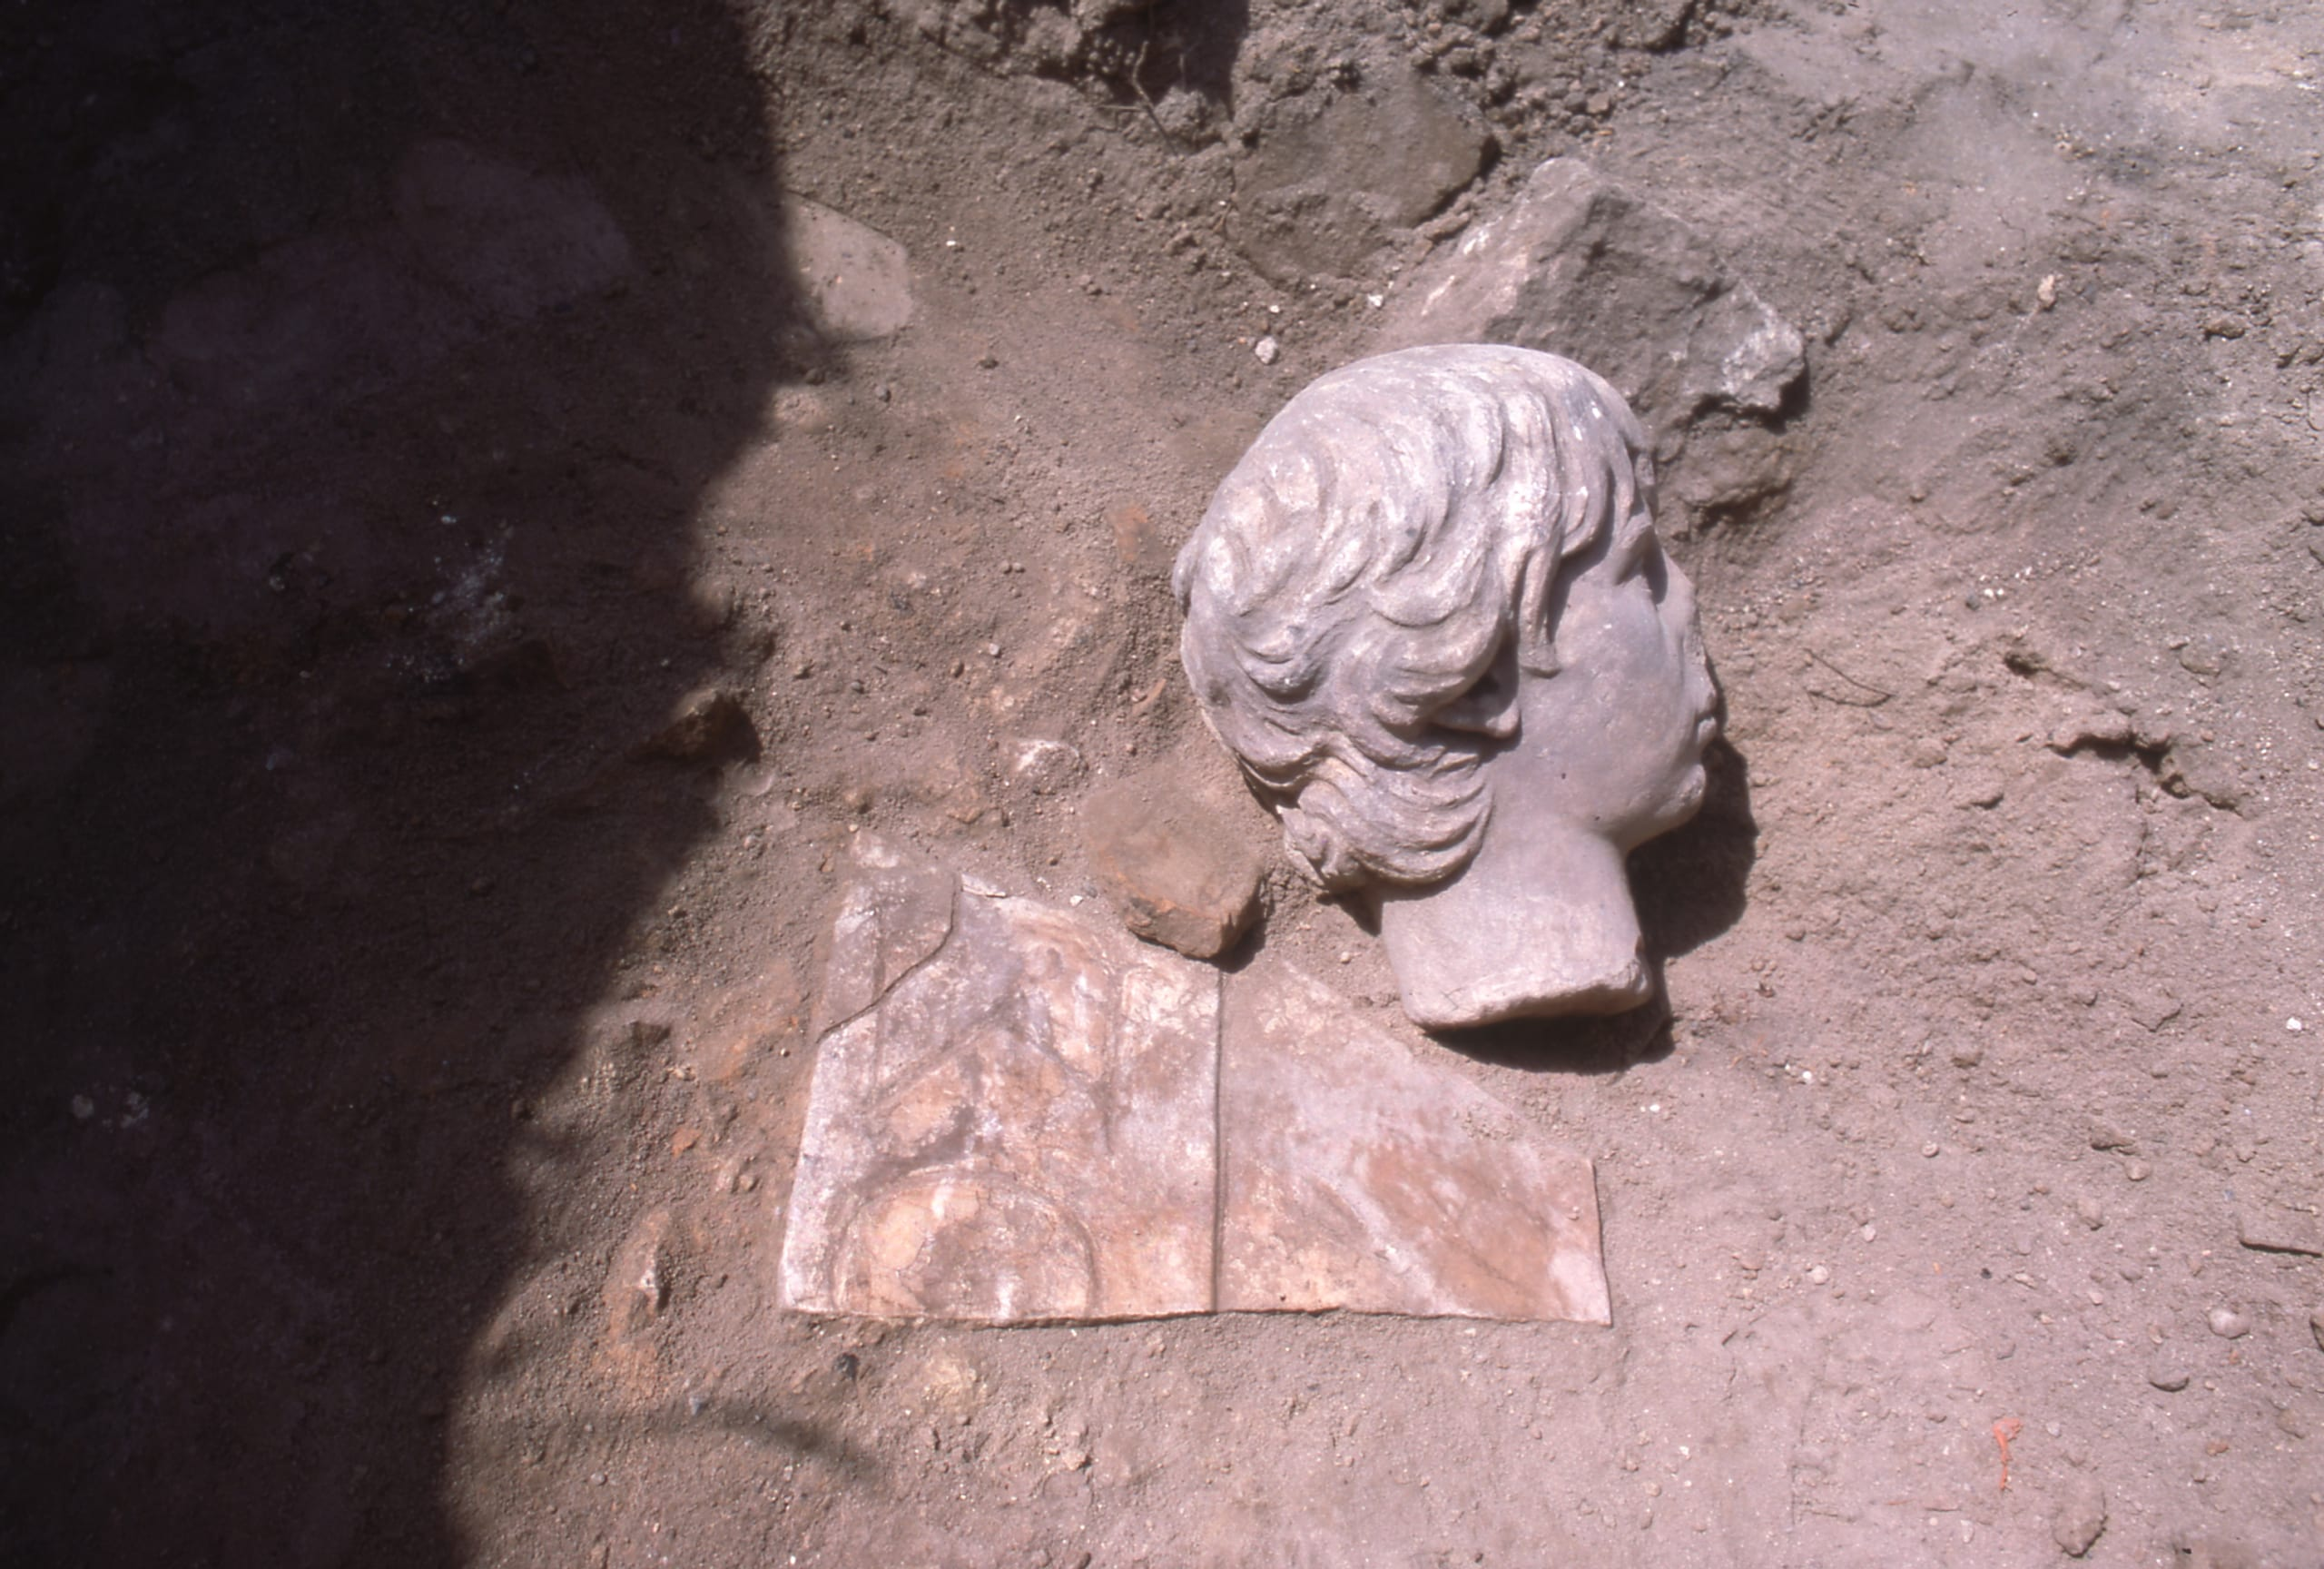 Head of statue and marble fragment